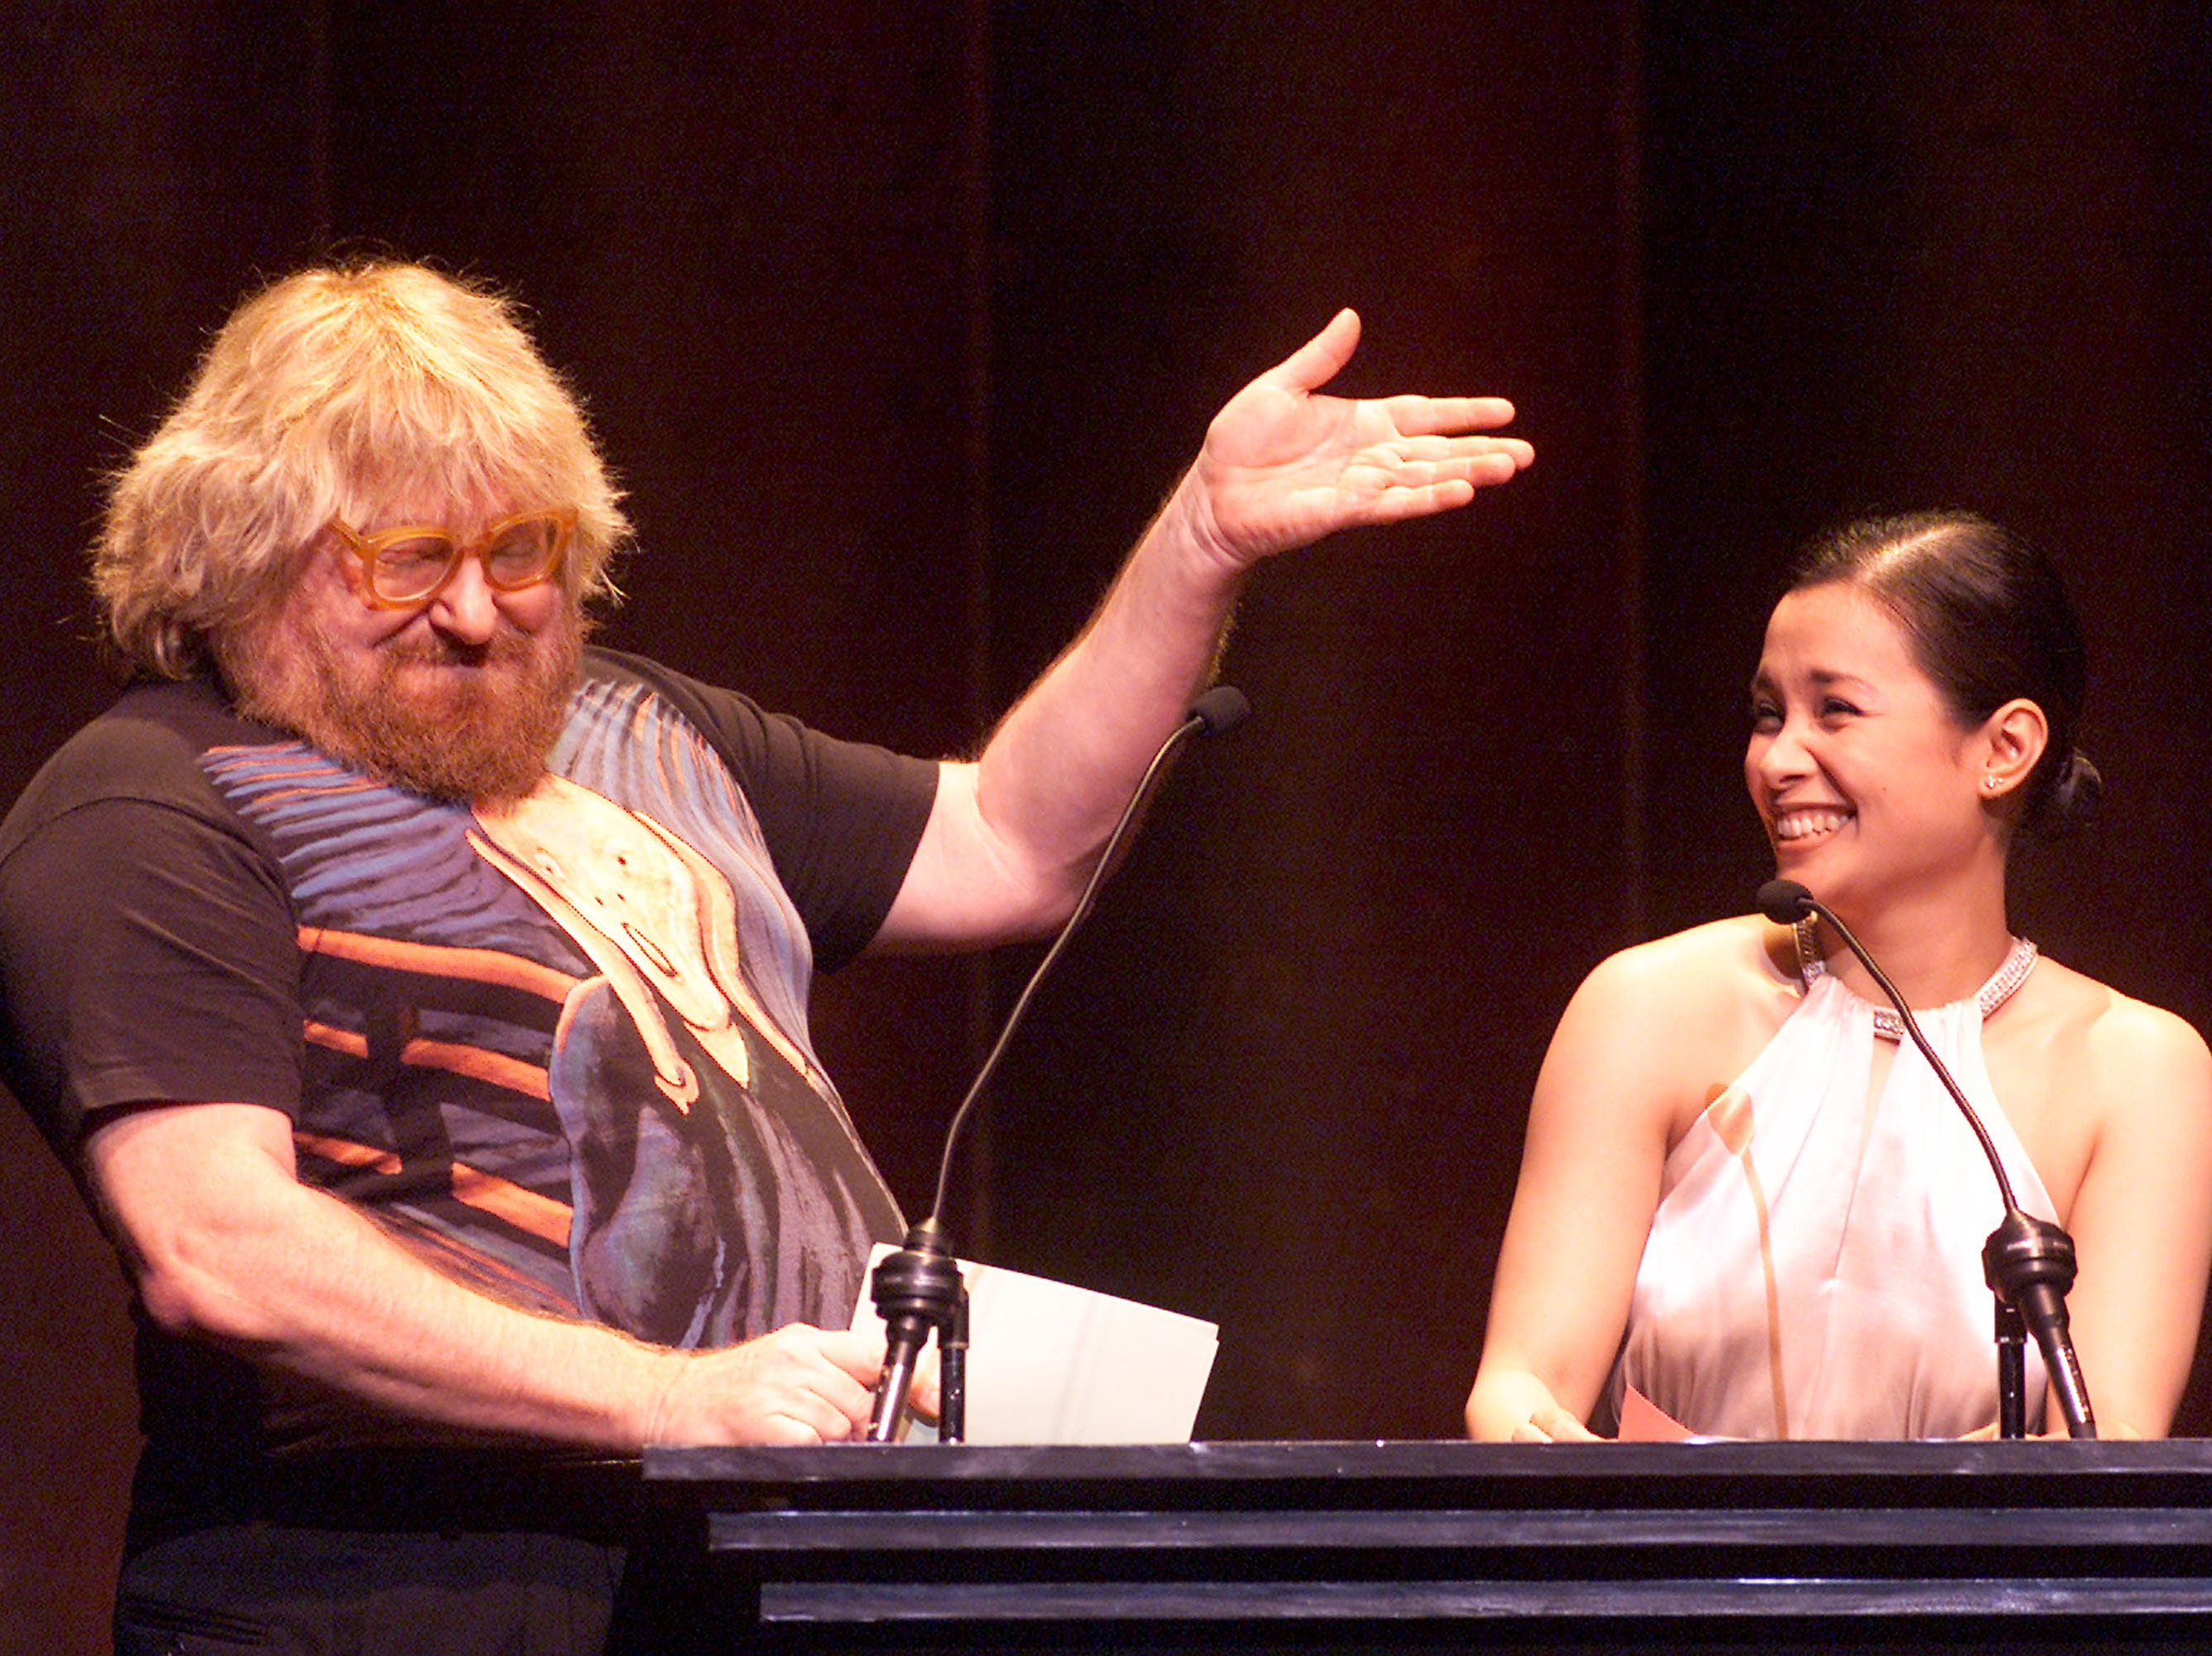 Bruce Vilanch and Lea Salonga host the 2001 Ovation Awards at the Kodak Theatre in Los Angeles on Nov. 12, 2001.